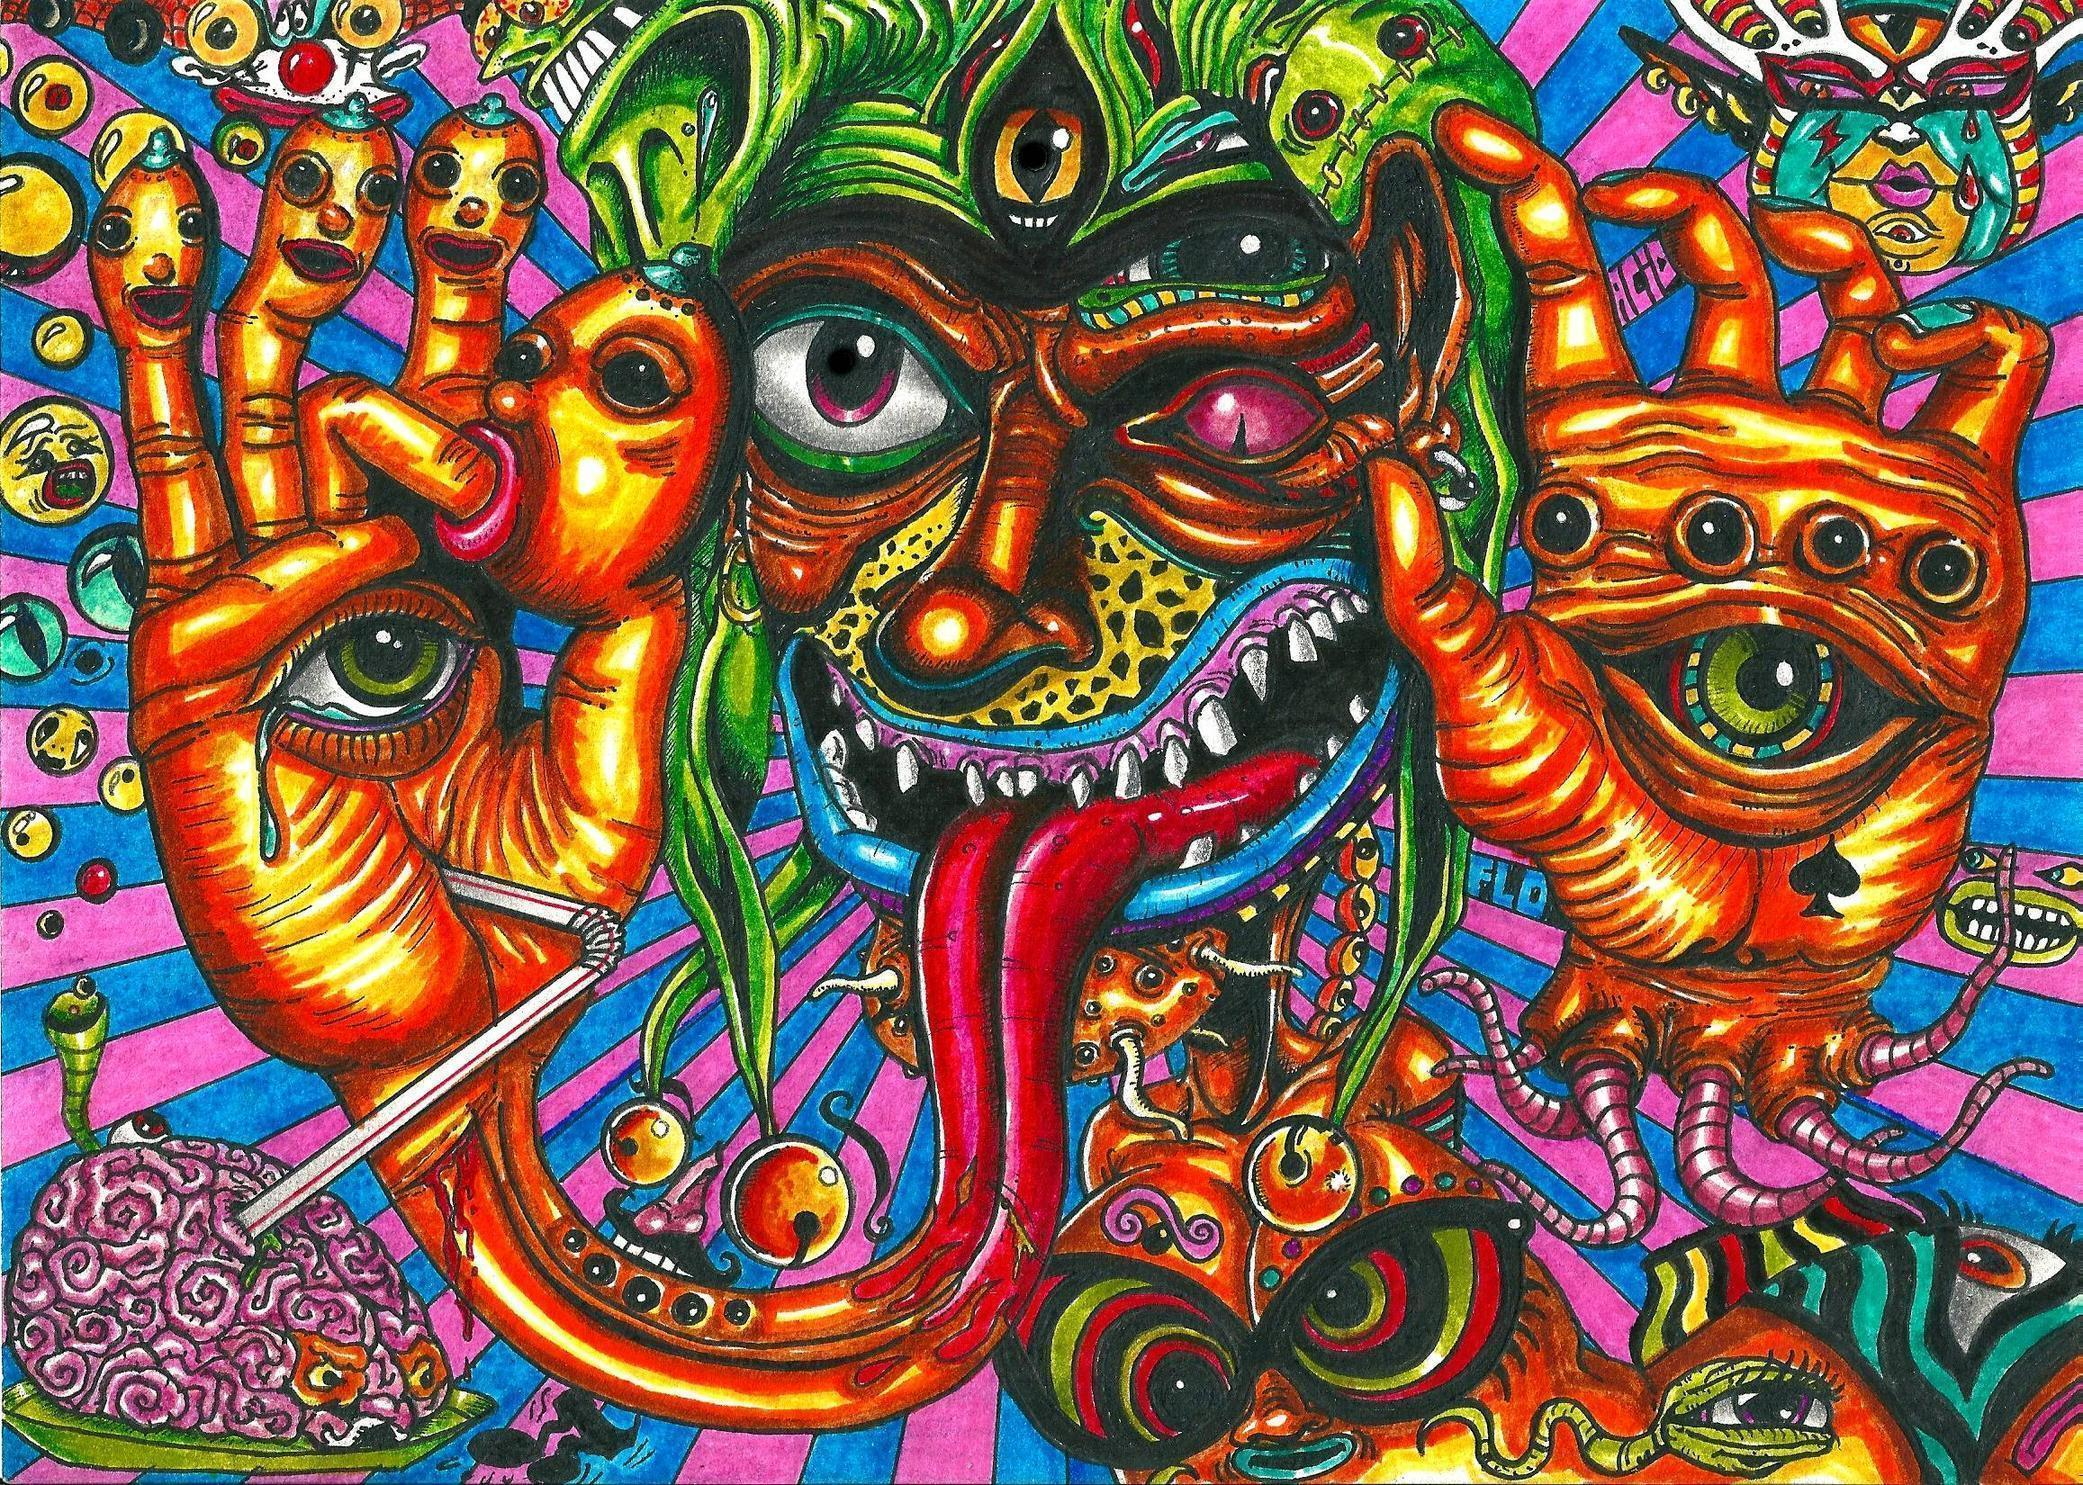 Trippy 5 by defictionalization on DeviantArt |Crazy Trippy Drawings